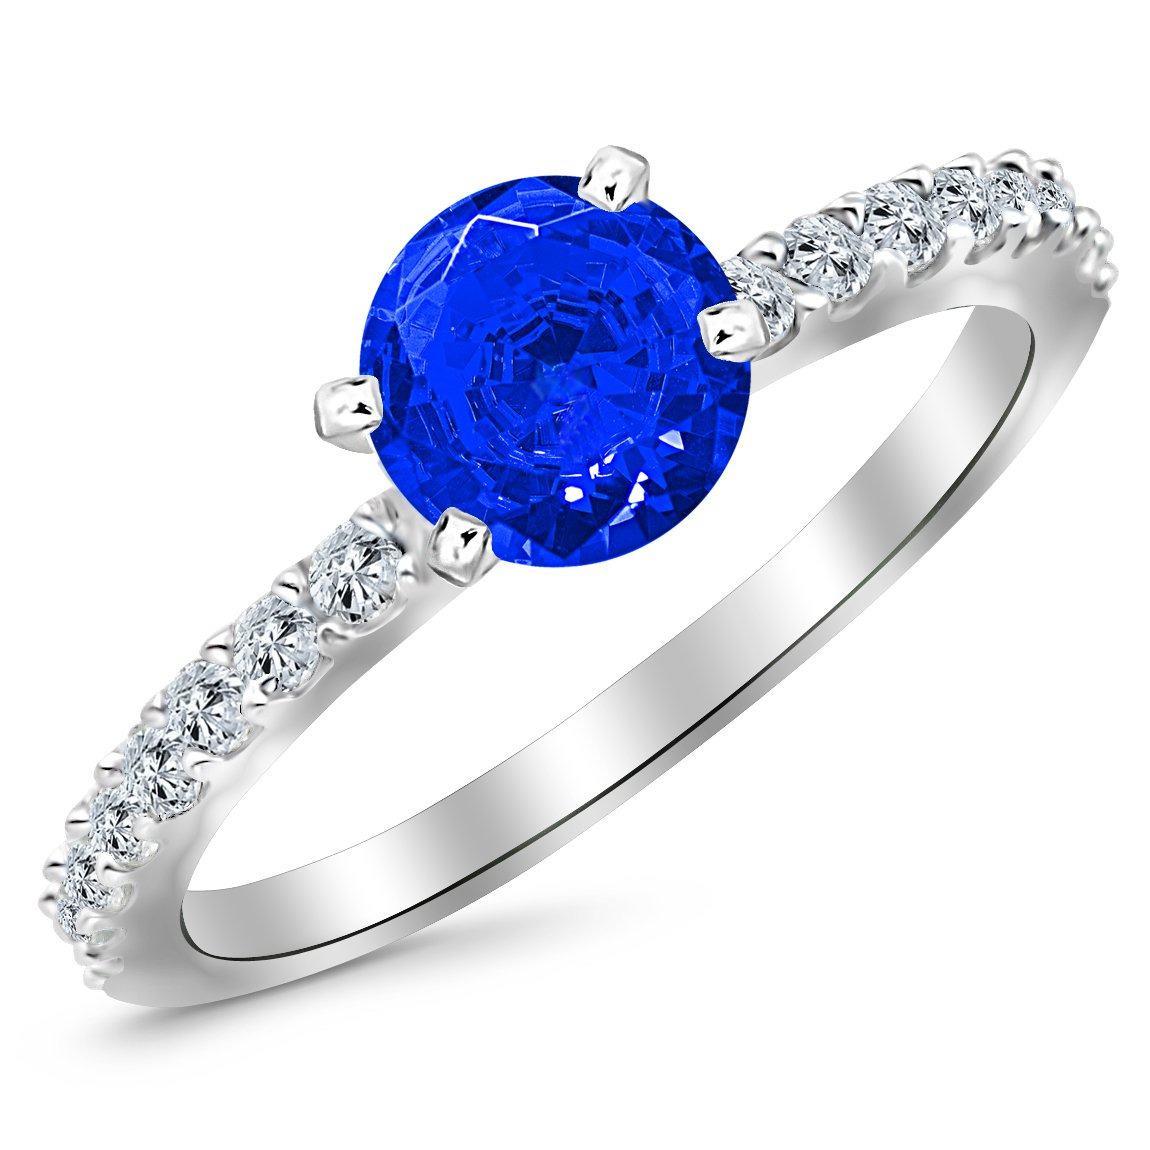 14K White Gold Classic Side Stone Pave Set Diamond Engagement Ring with a 3 Carat Blue Sapphire Heirloom Quality Center